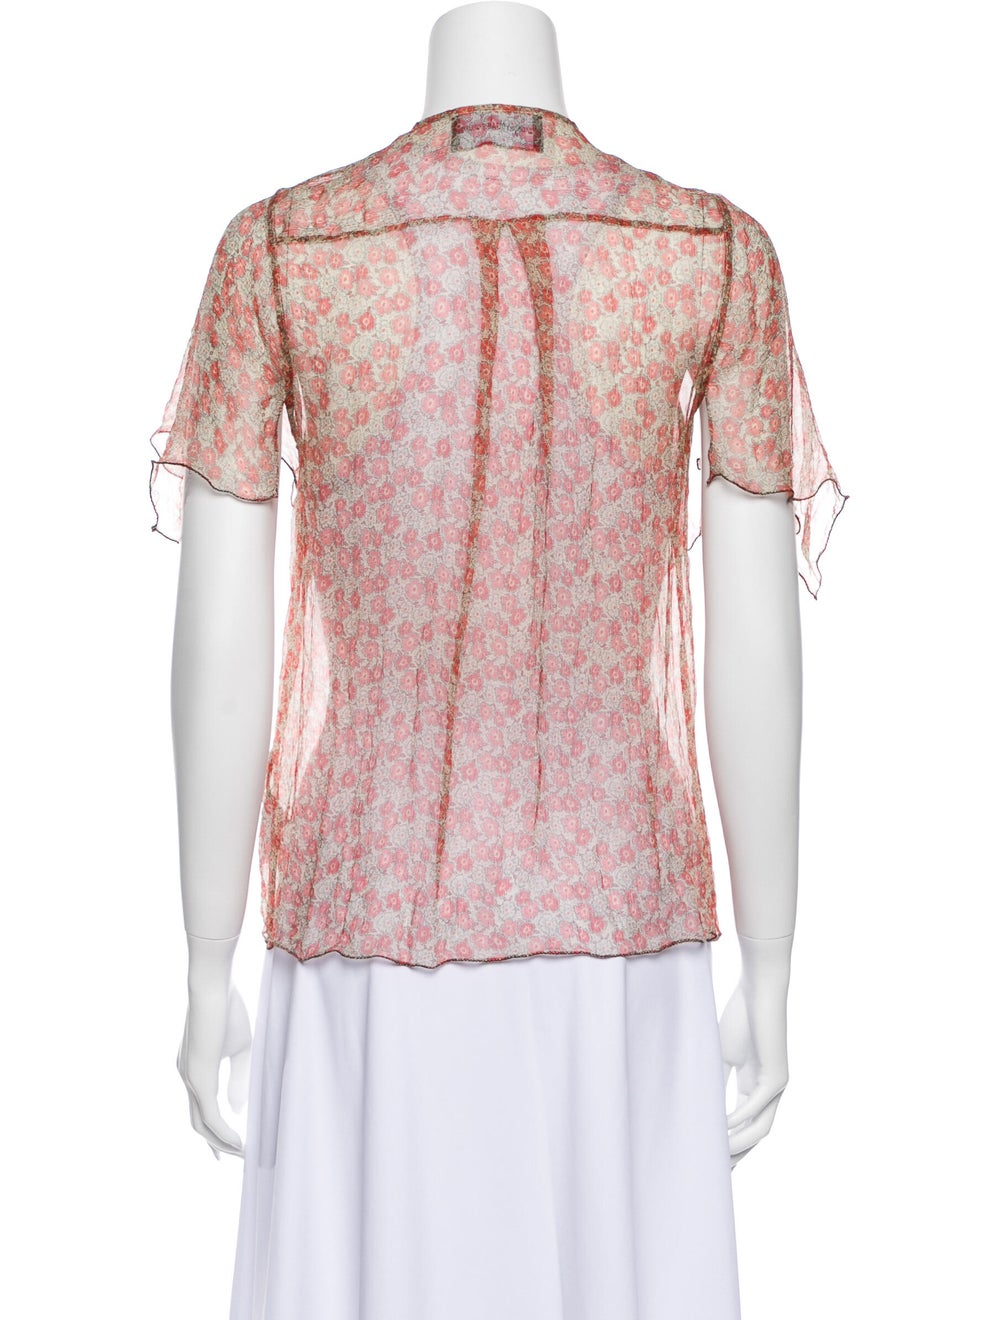 Zadig & Voltaire Silk Floral Print Button-Up Top … - image 3